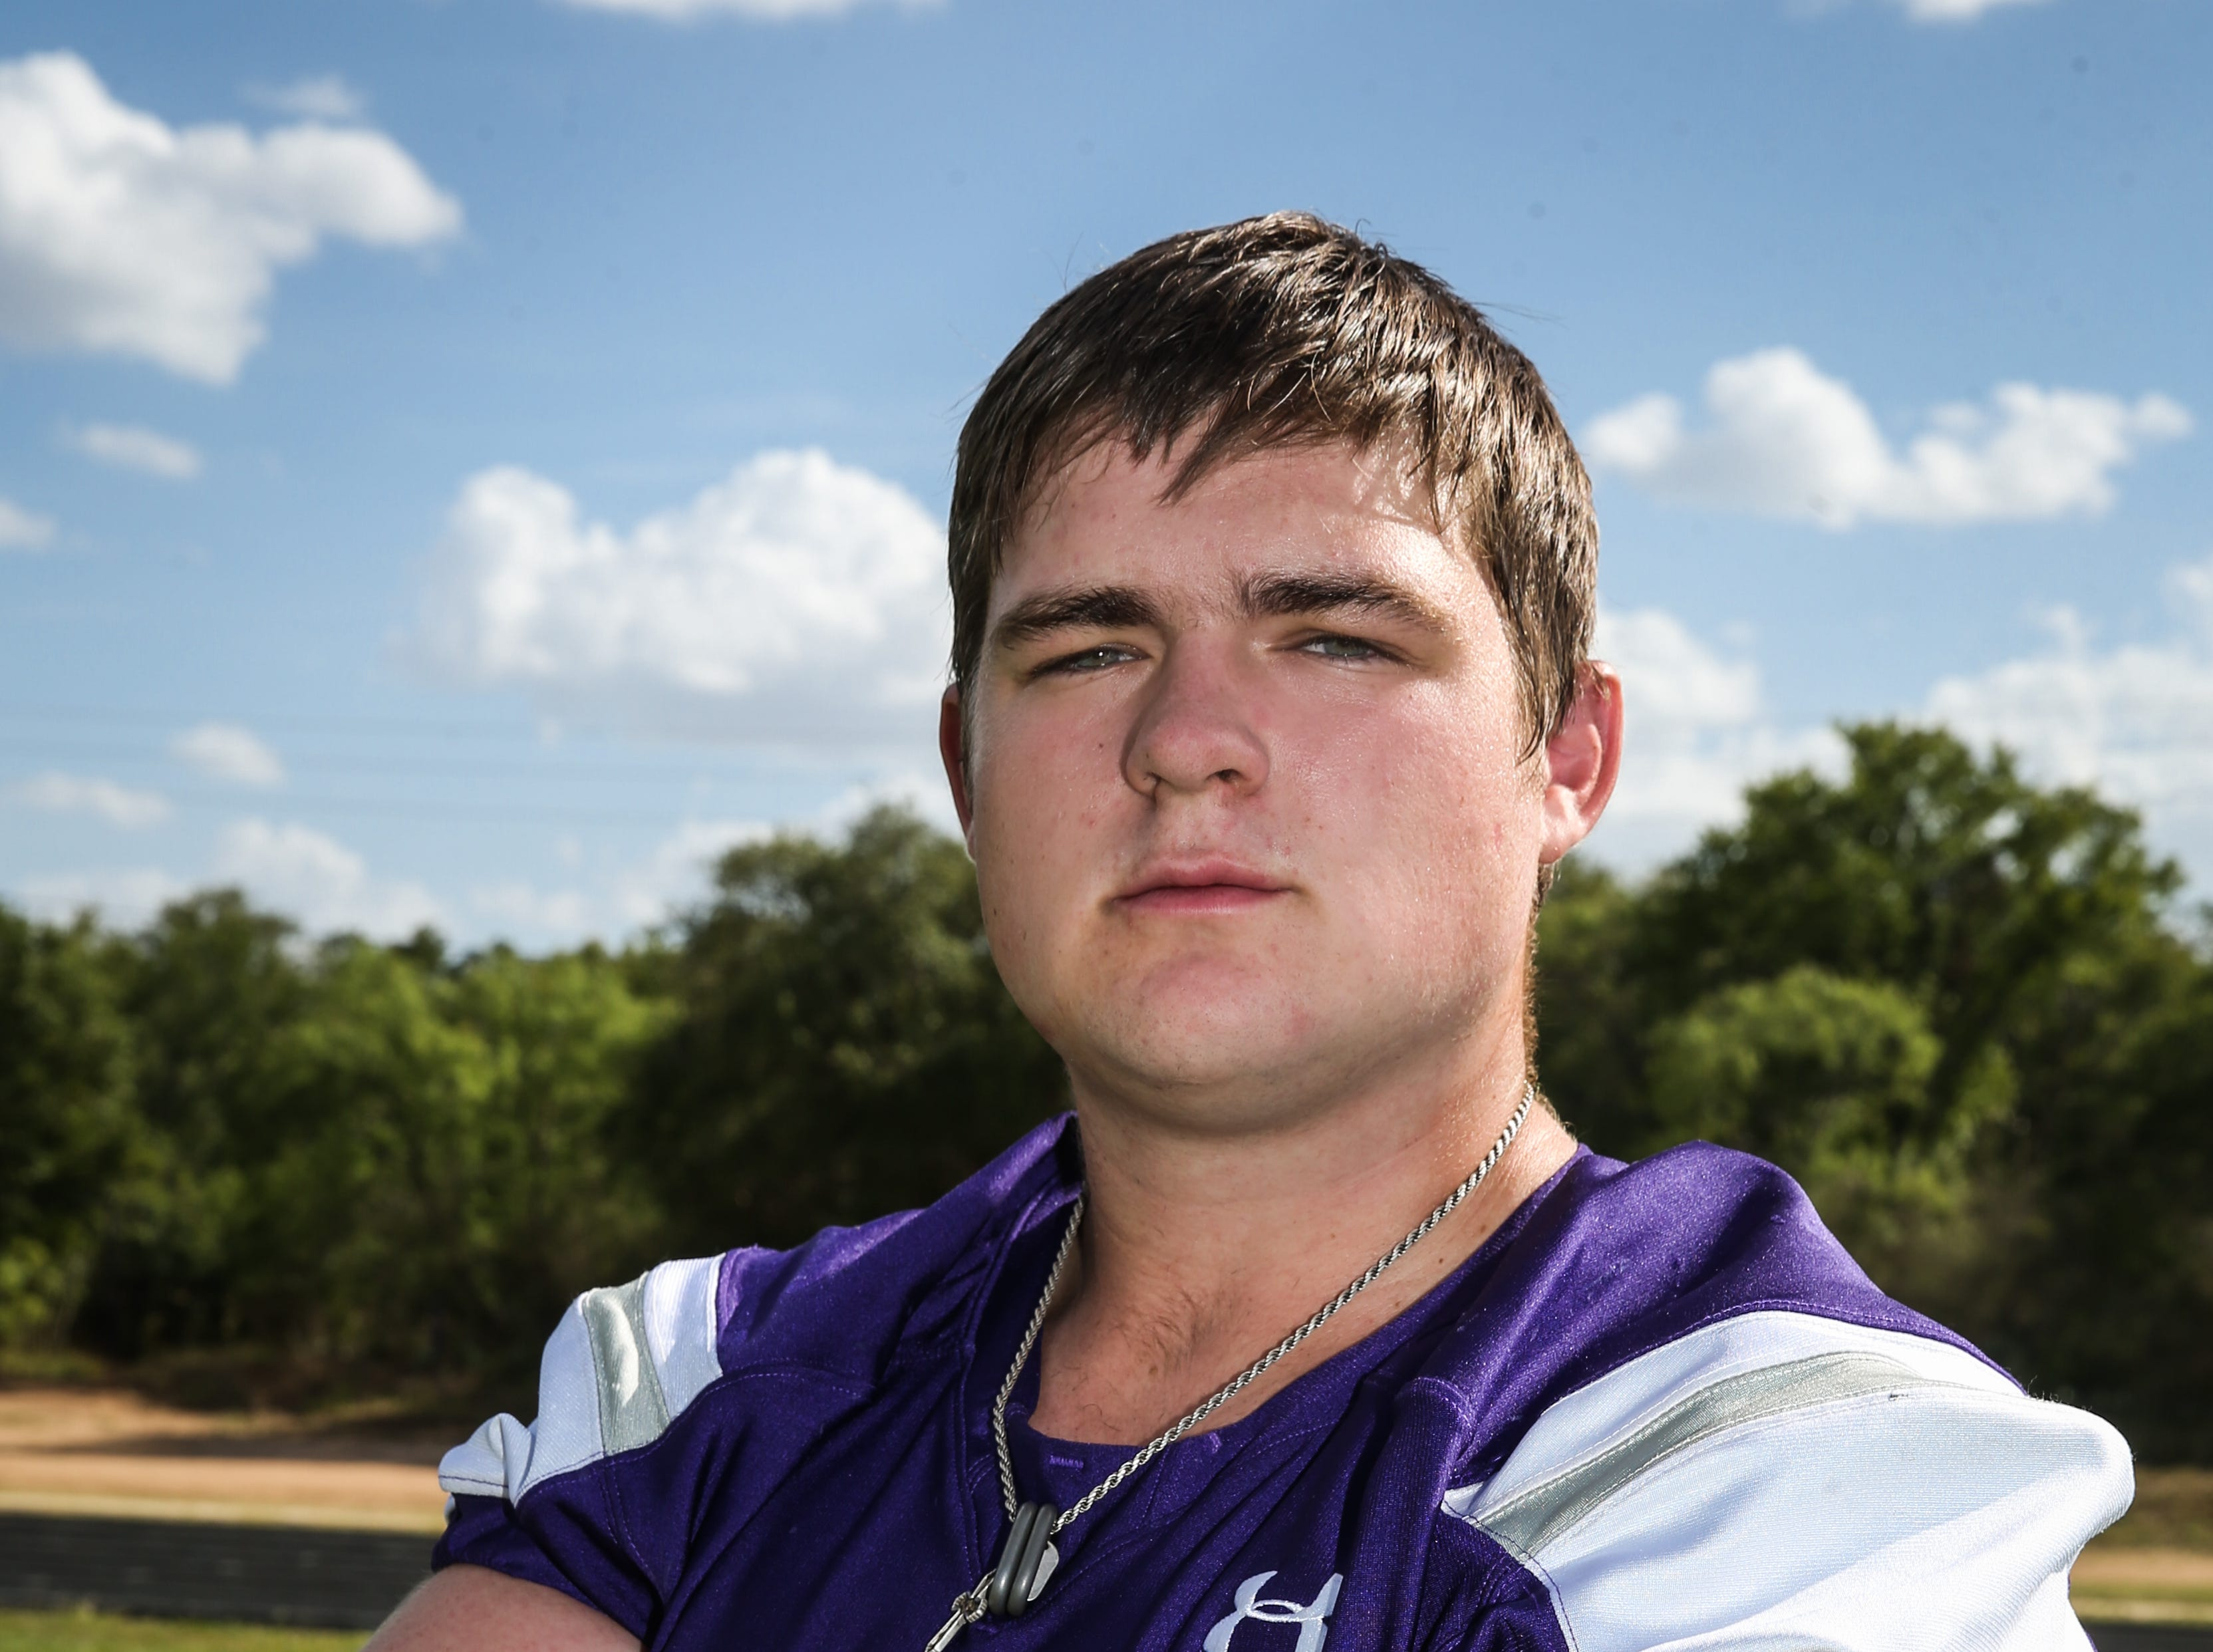 Lucas Martin, Mason, Offensive lineman, 6-3, 270, Sr.  Scouting report: Martin graded out at 92 percent as the Punchers' center last season, blocking for one of the best Class 2A offenses in the state. He was an honorable mention all-state selection. He gives Mason a strong cornerstone to build its offensive line around in 2018.